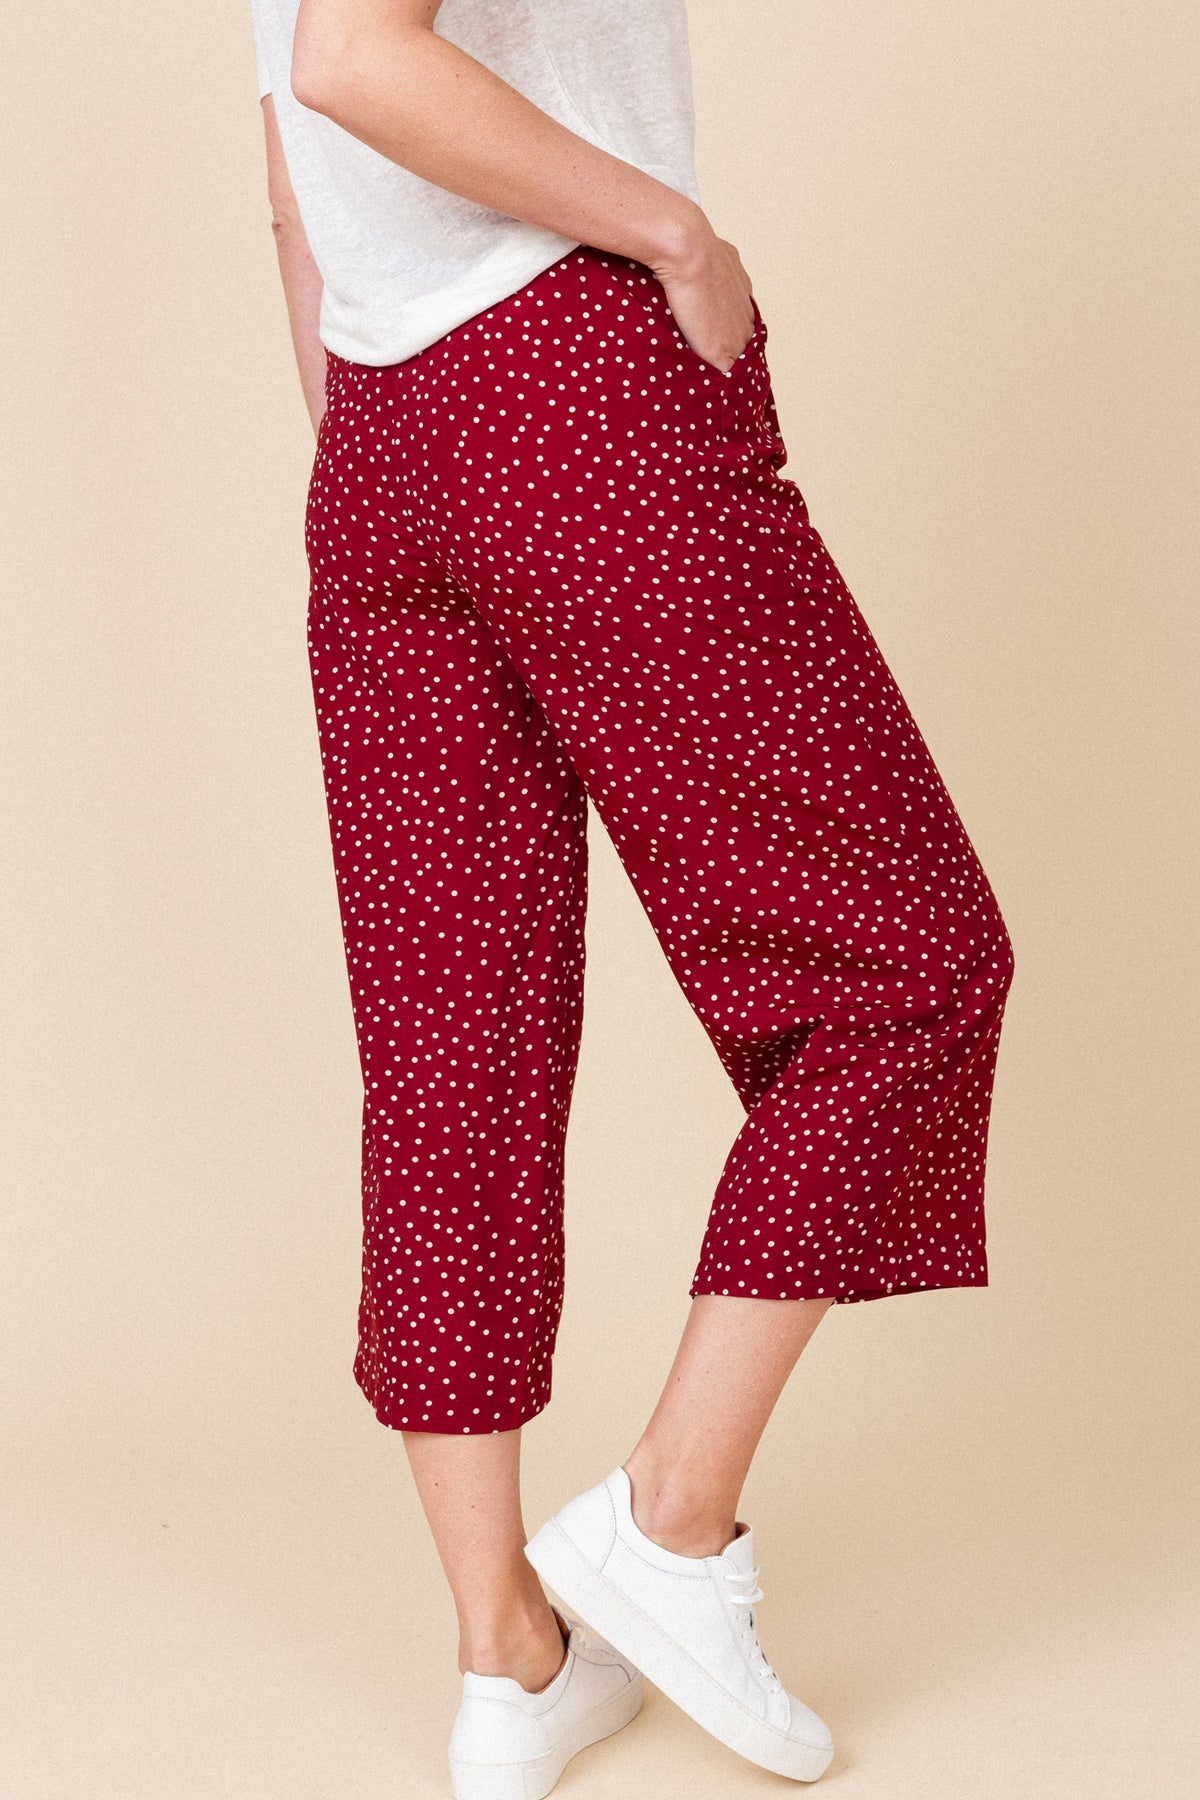 The Jetset Pants Dots All Over